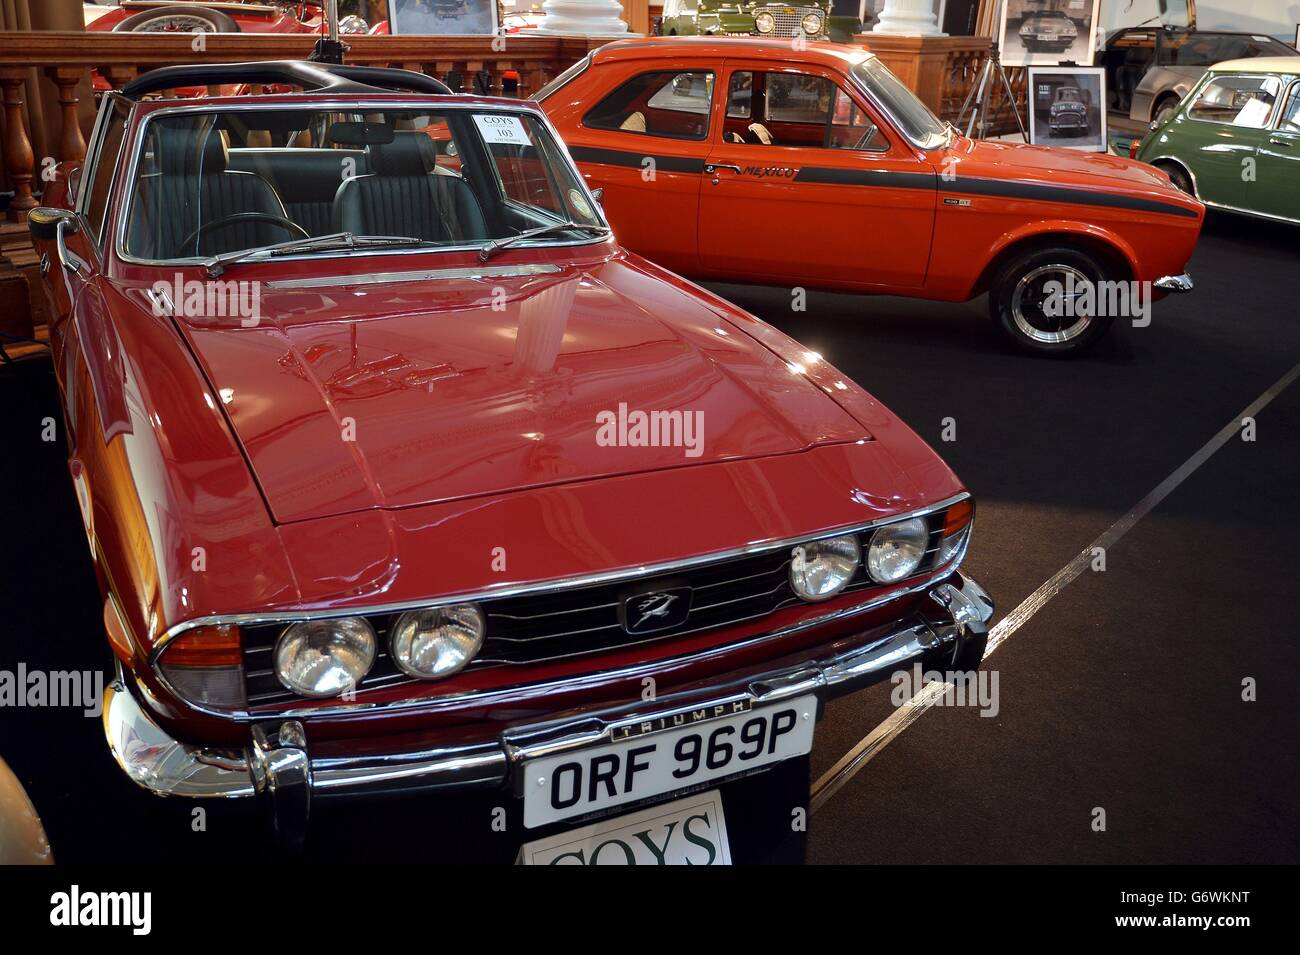 Vintage cars auction Stock Photo, Royalty Free Image: 107514452 ...